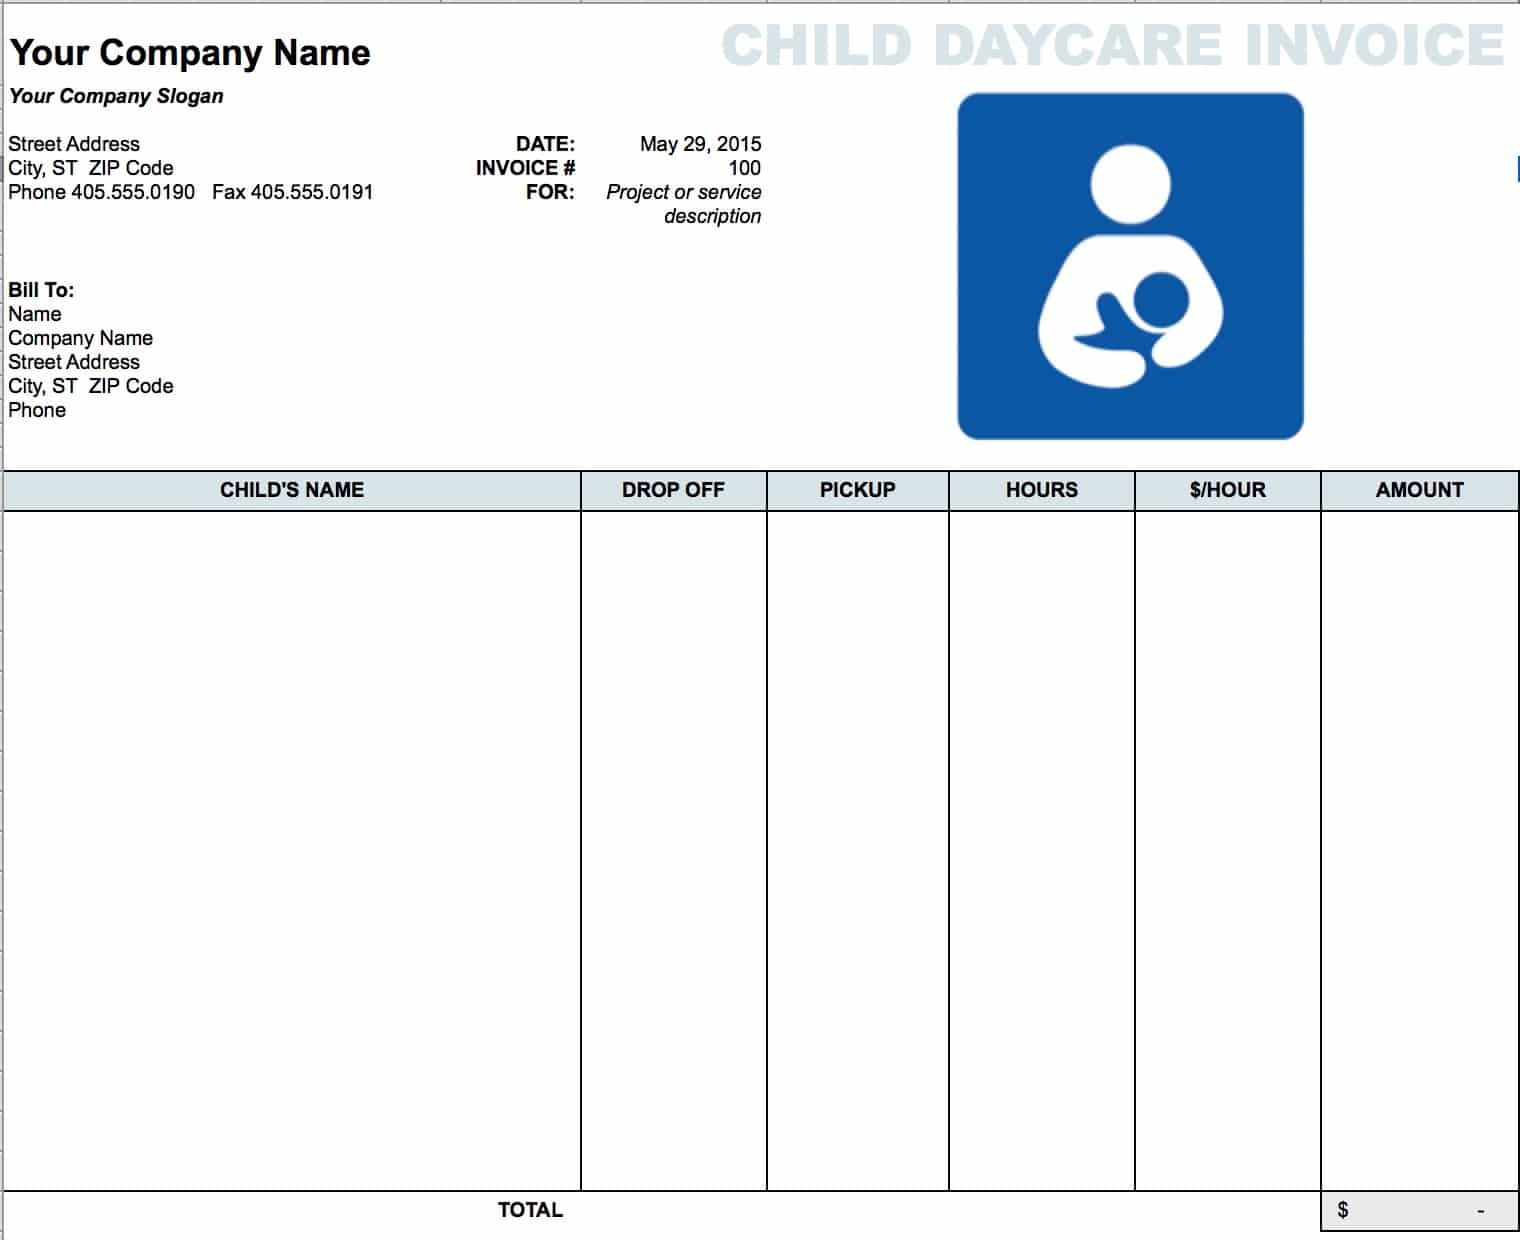 Free Daycare Child Invoice Template Excel PDF Word Doc - Free billing invoice templates for service business